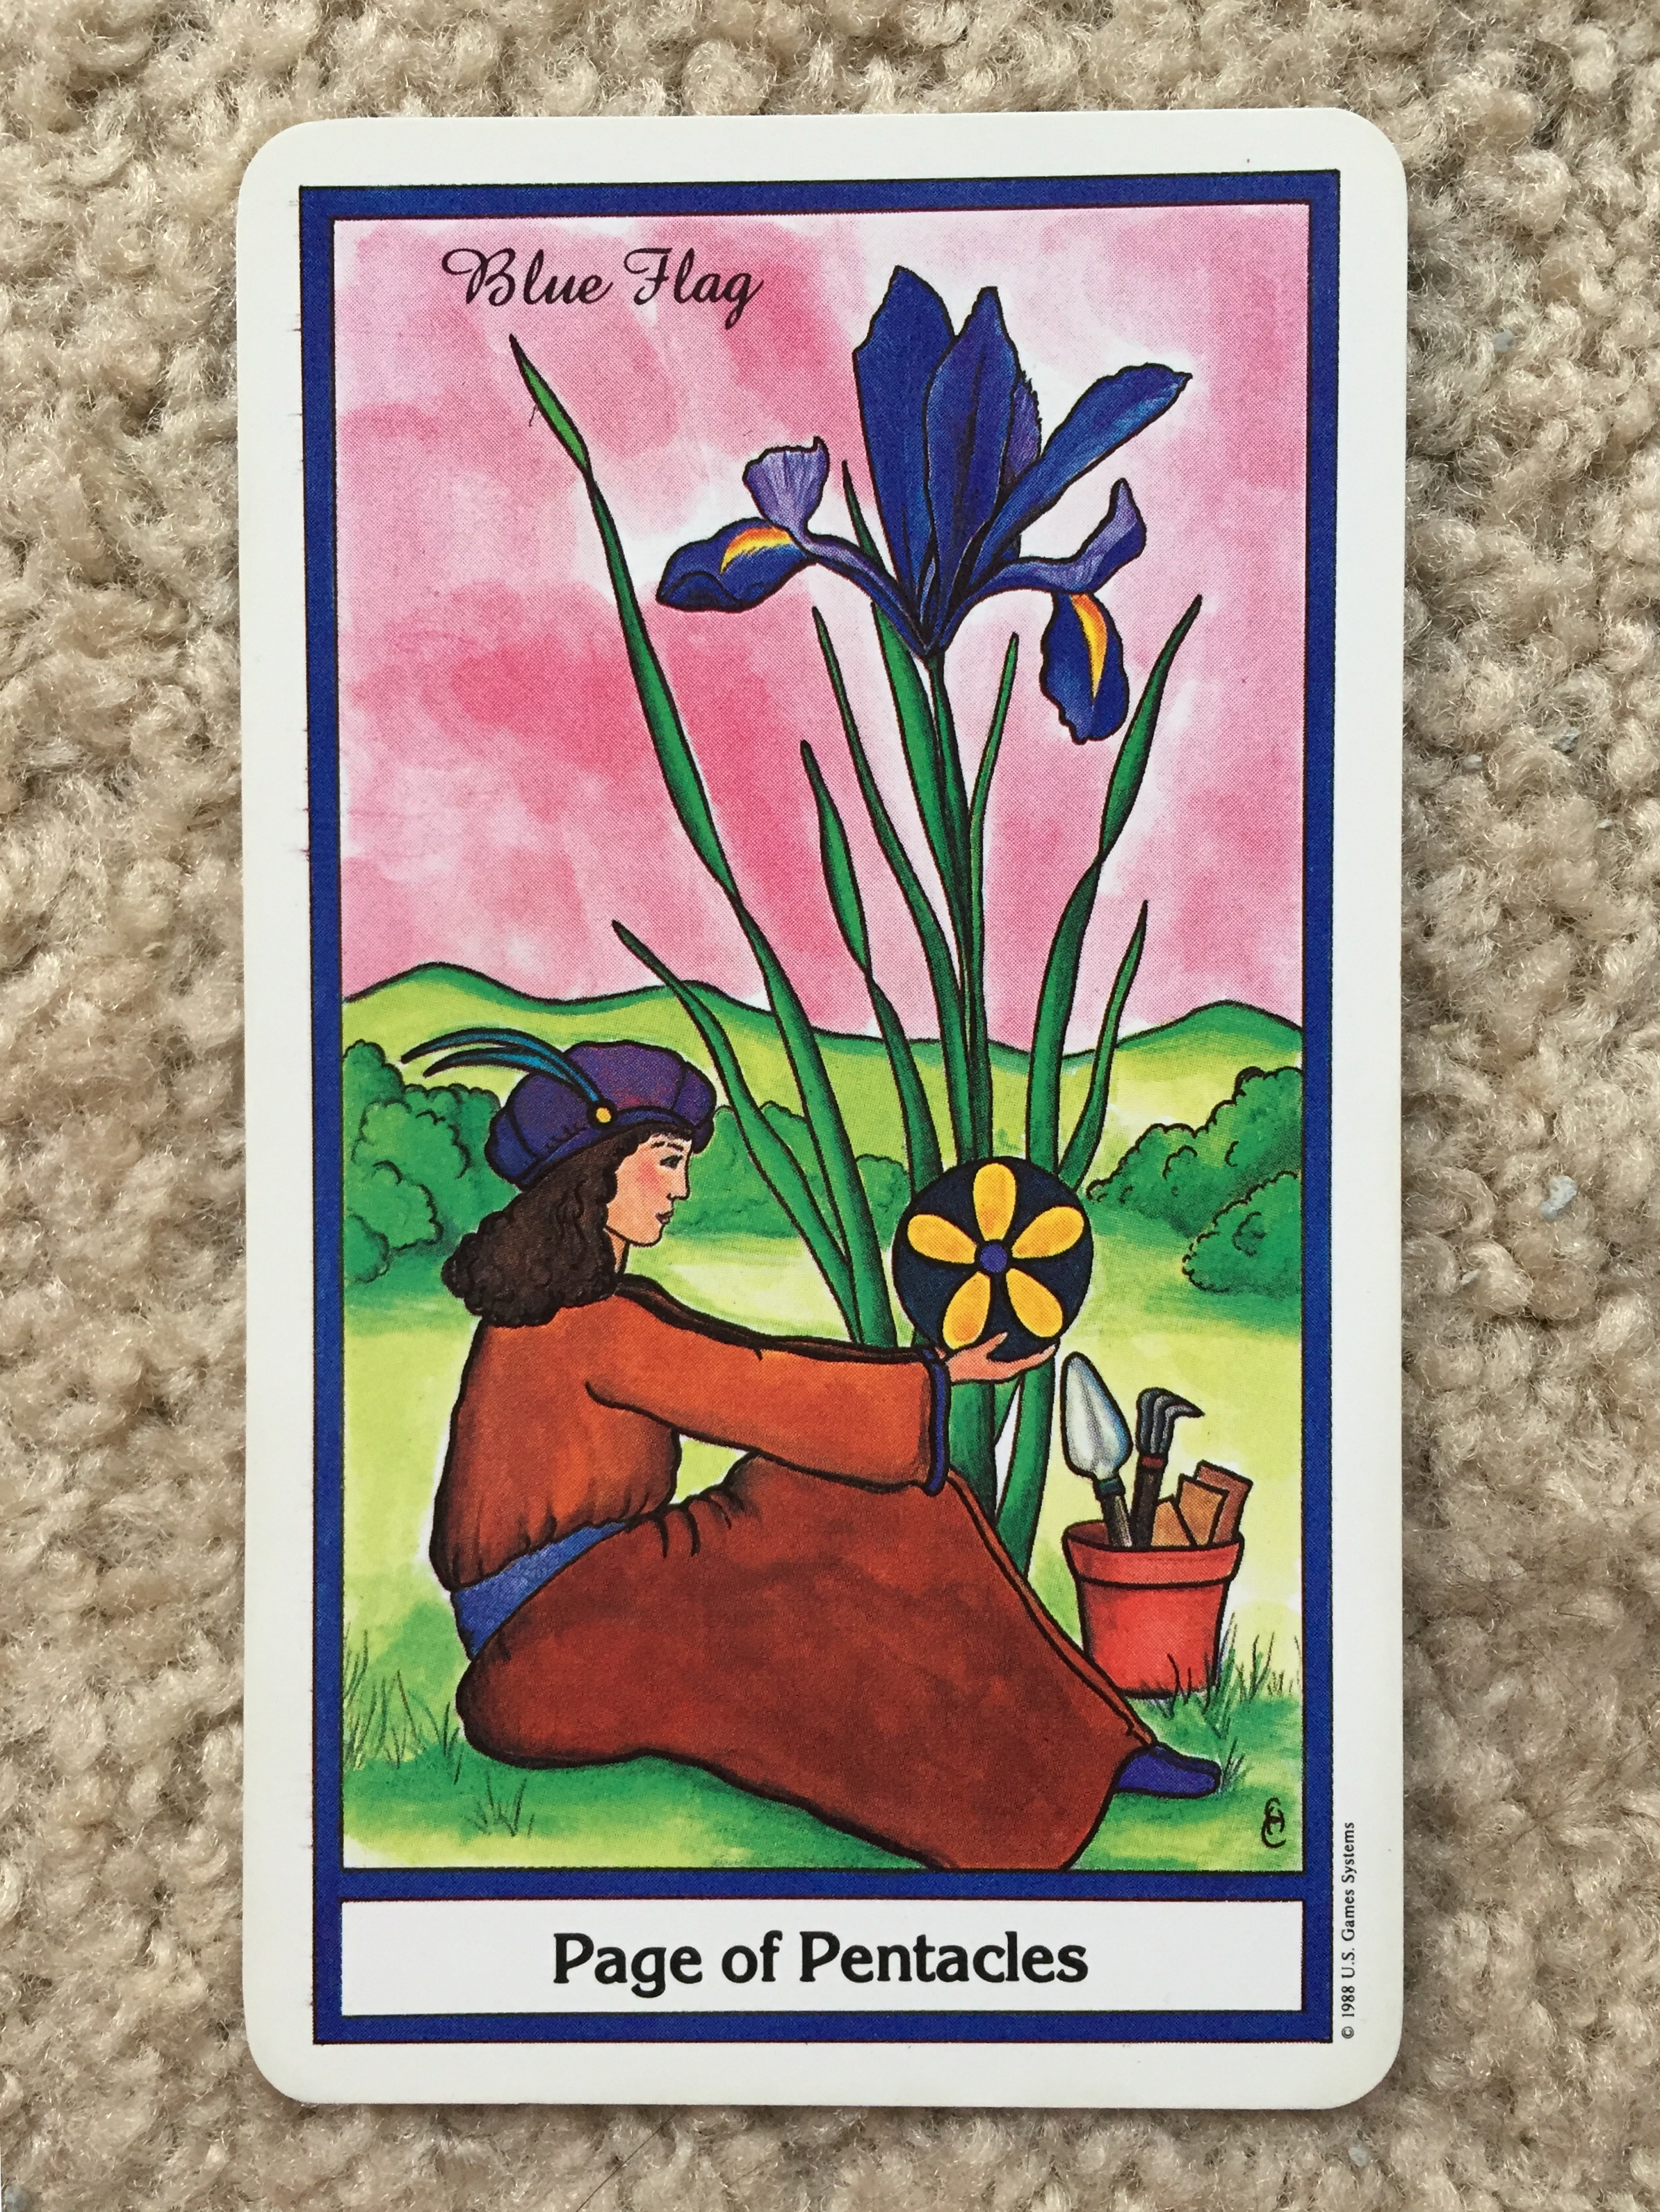 Page of Pentacles from The Herbal Tarot